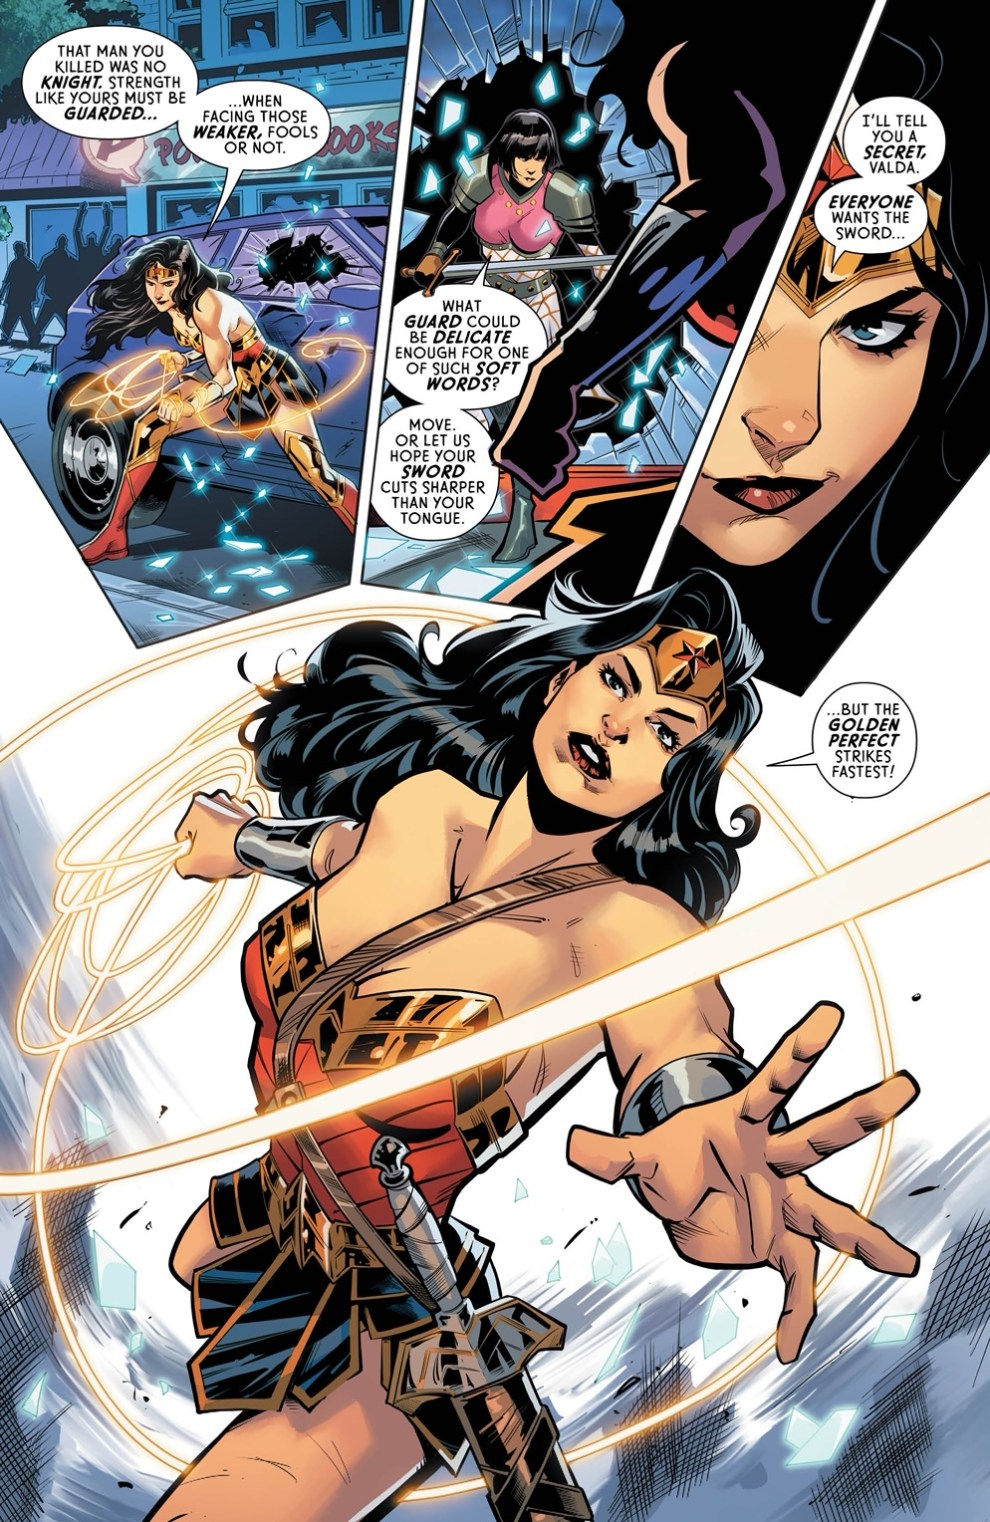 Wonder Woman #752 is written by Steve Orlando, with art by Max Raynor and color by Romula Fajardo Jr.